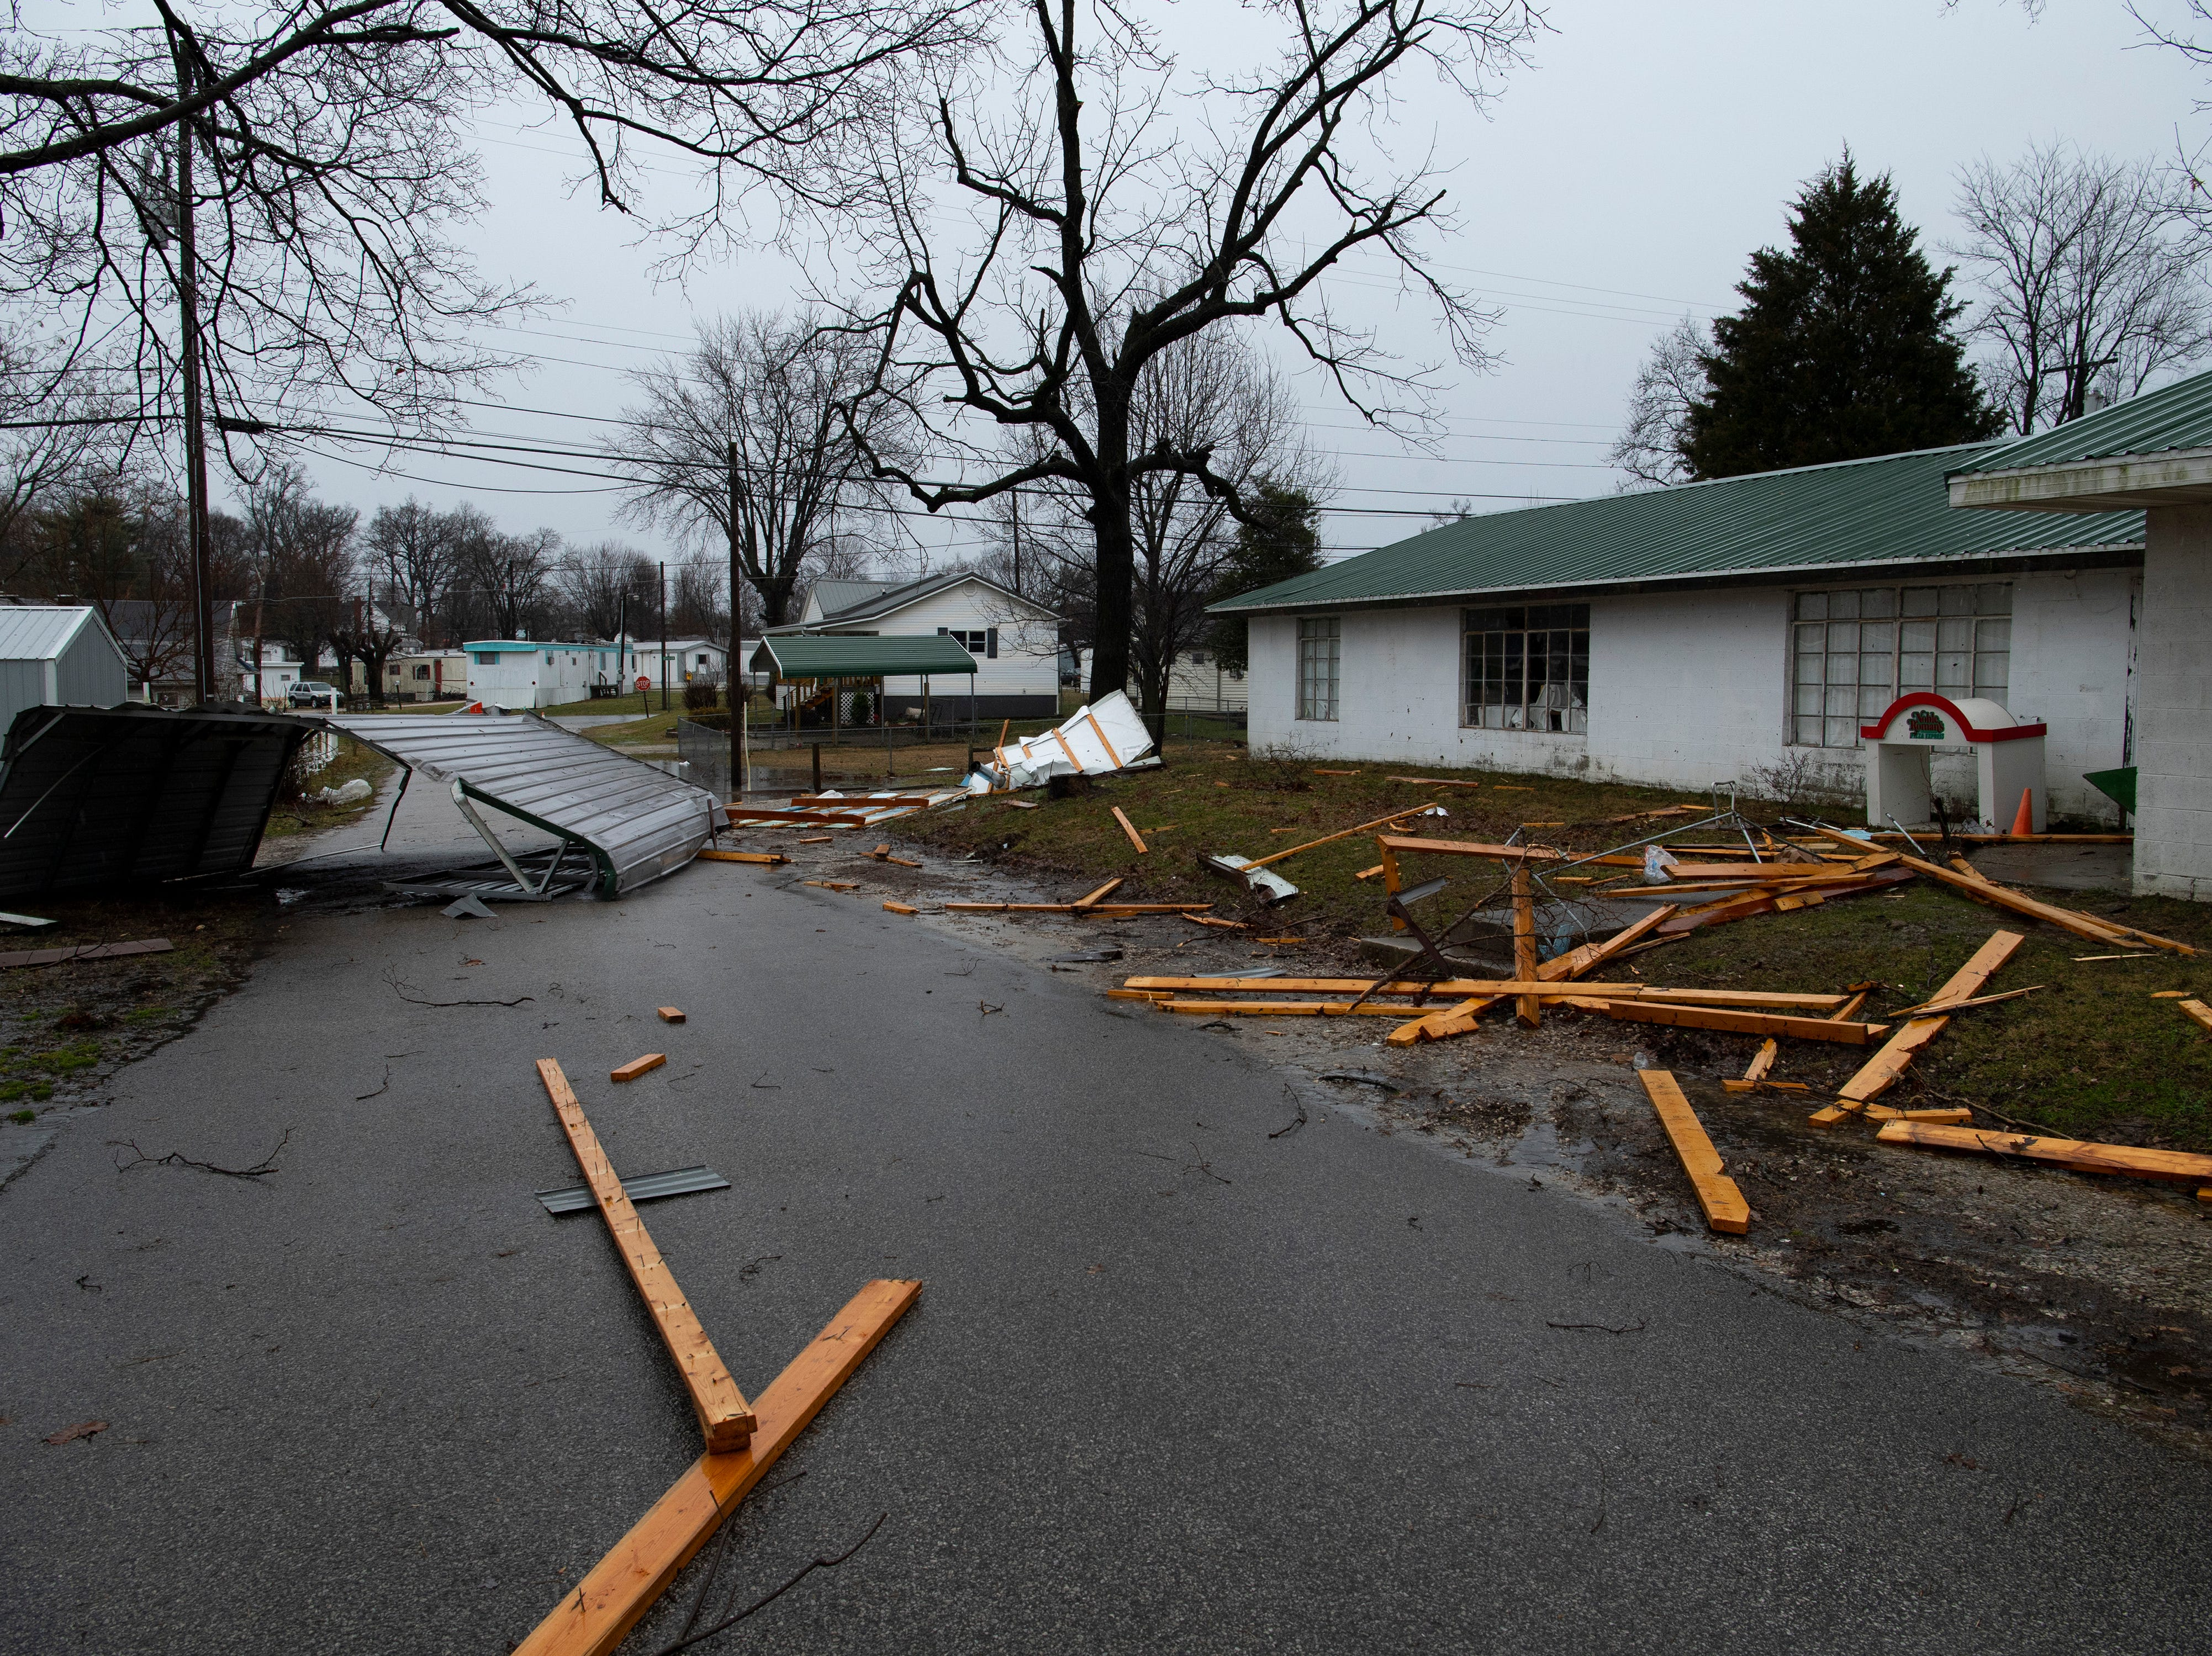 Wooden studs a strewn across a neighborhood street in Oakland City, Ind., after a storm hit the Gibson County town Thursday morning.